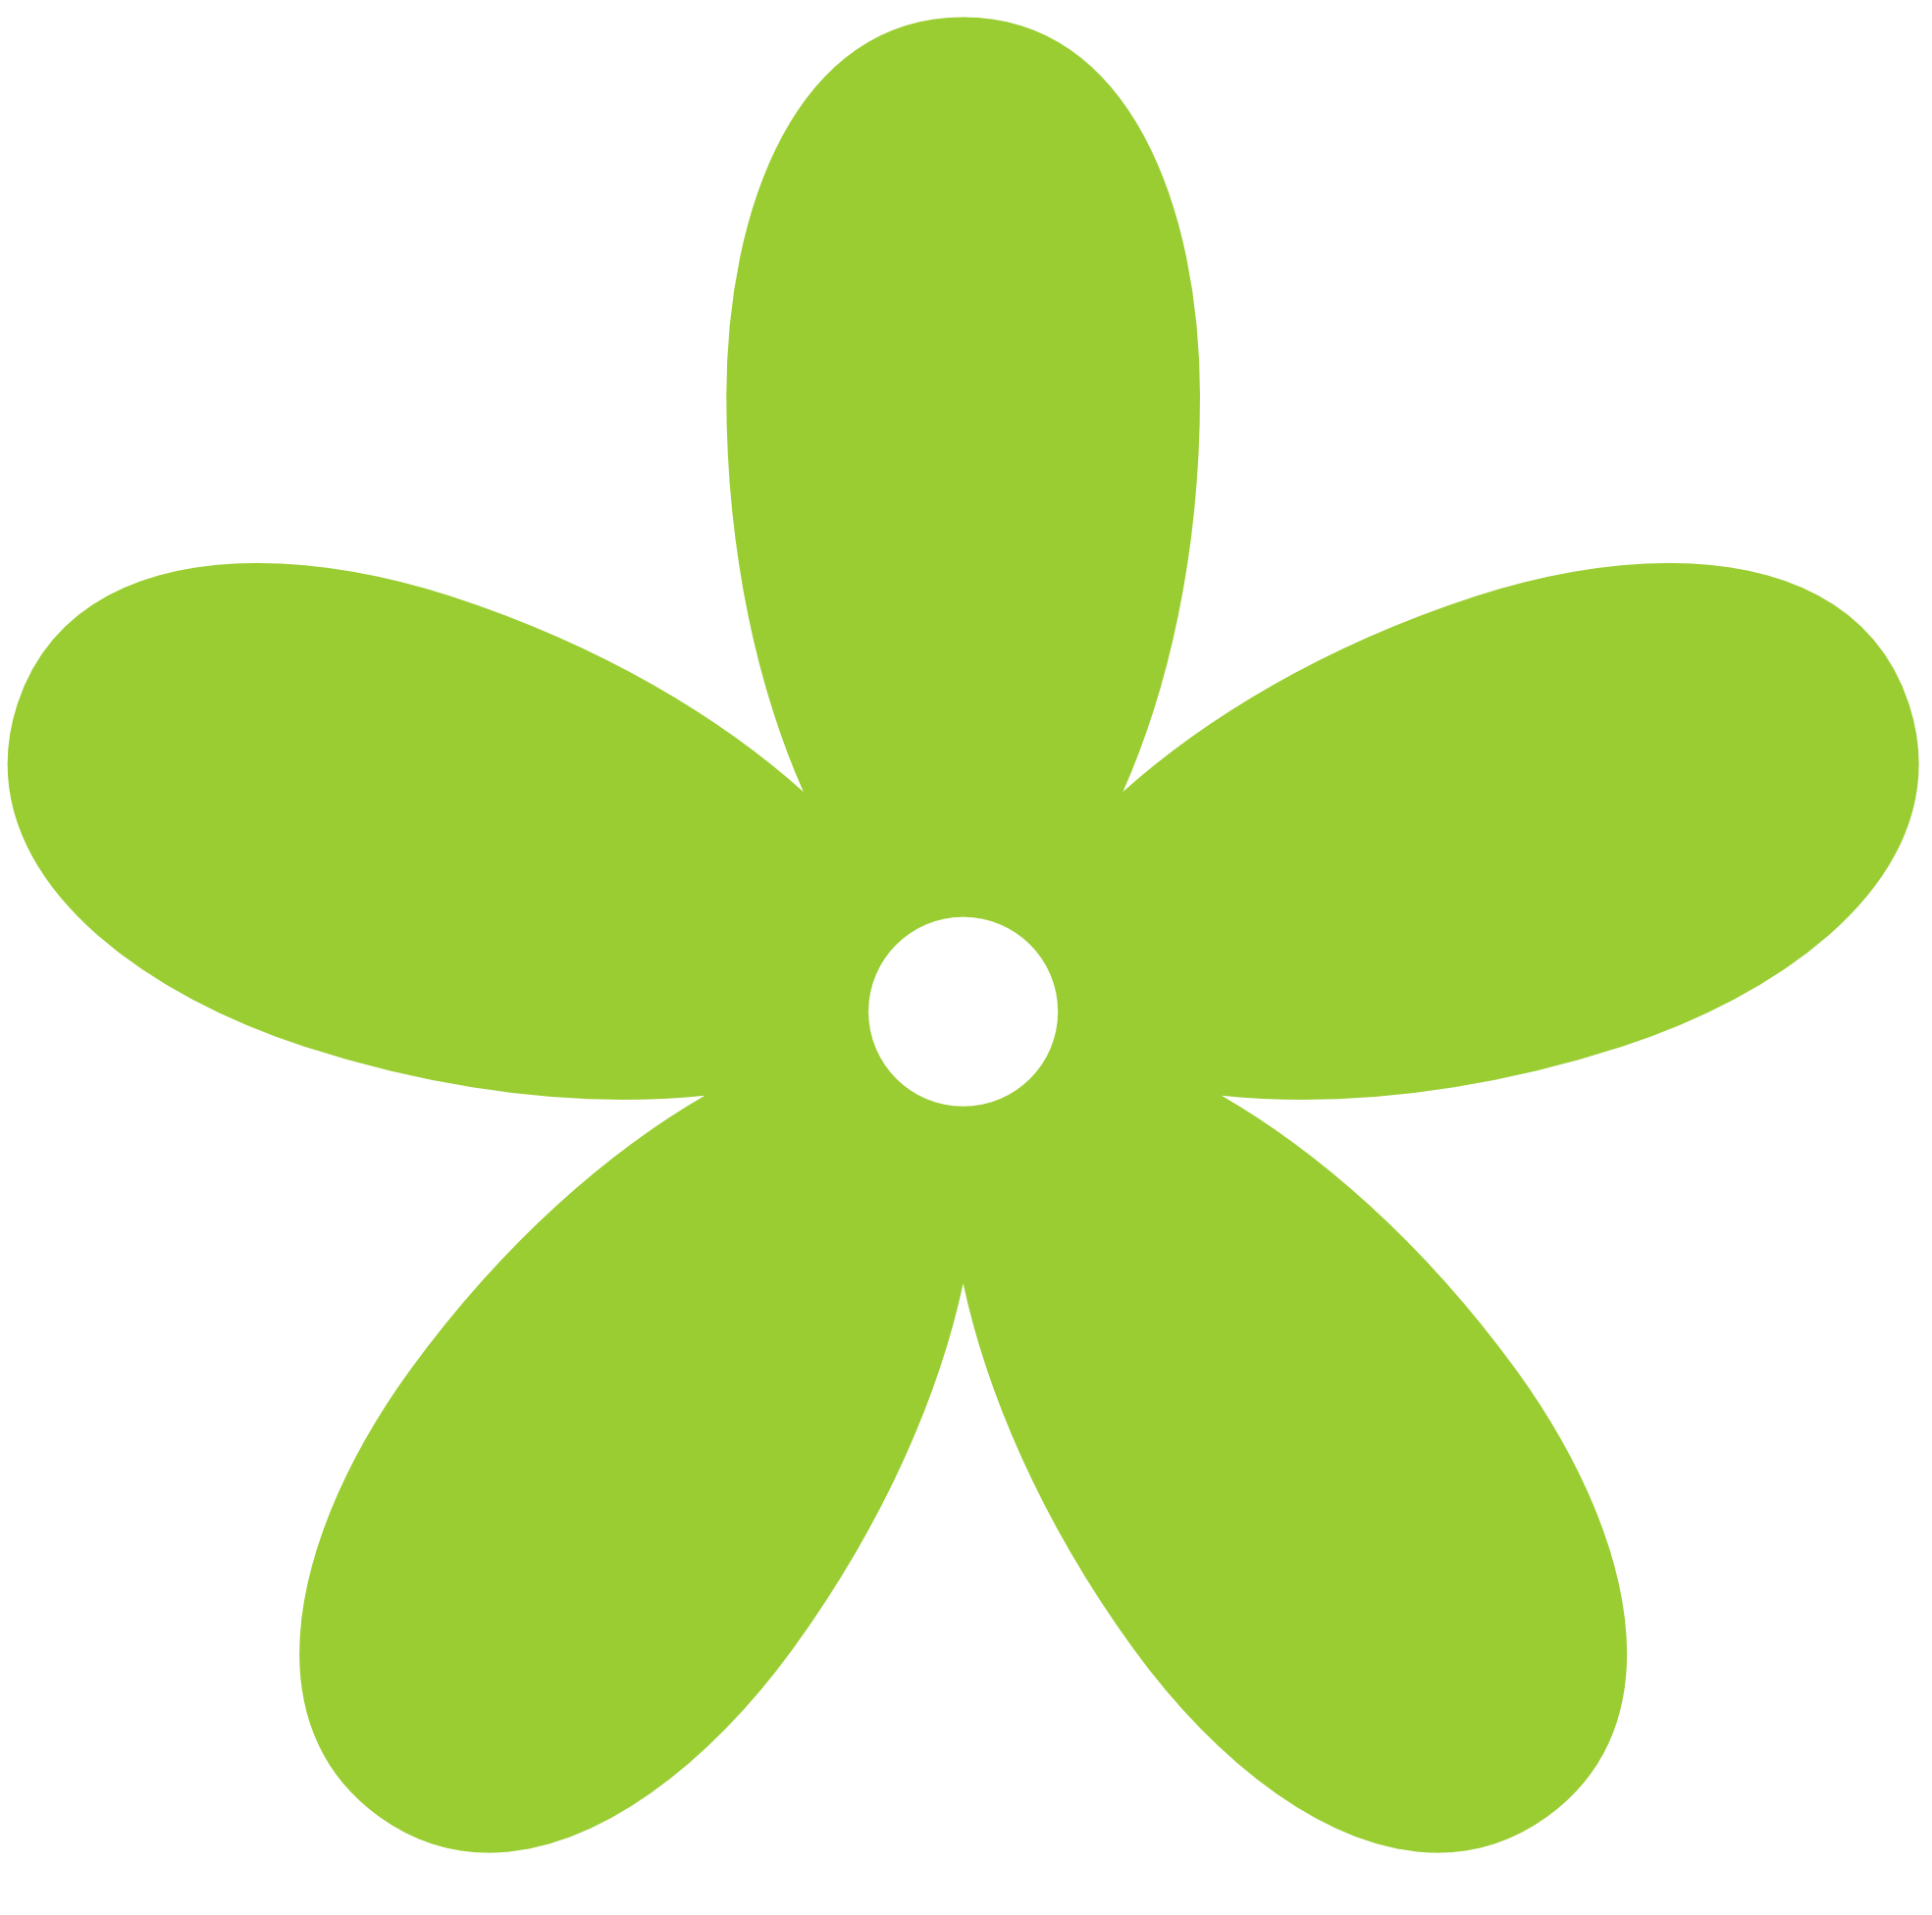 free green flower clipart - photo #1